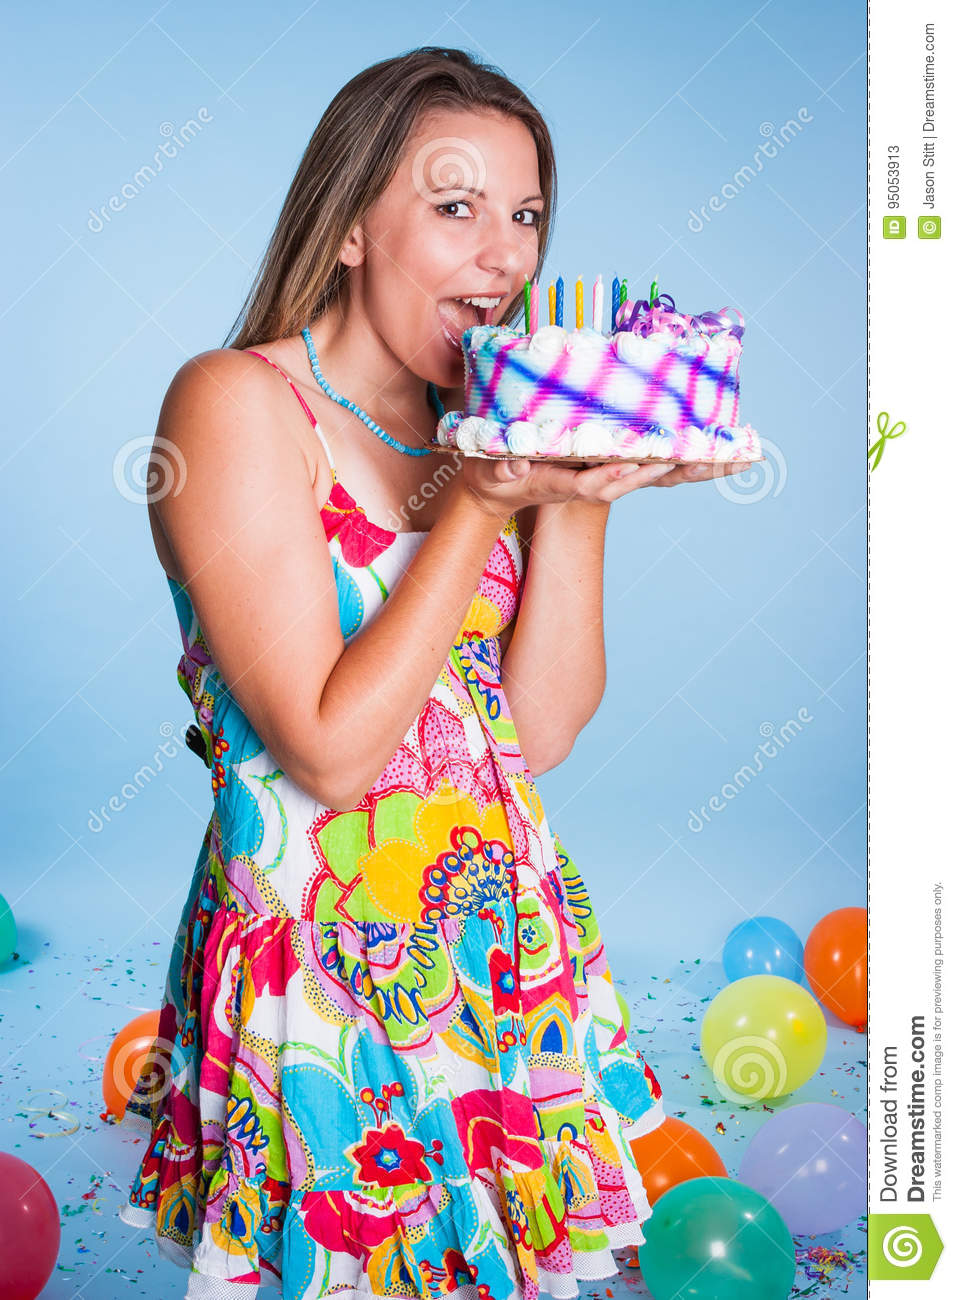 Superb Woman Eating Birthday Cake Stock Image Image Of Pretty 95053913 Funny Birthday Cards Online Inifofree Goldxyz